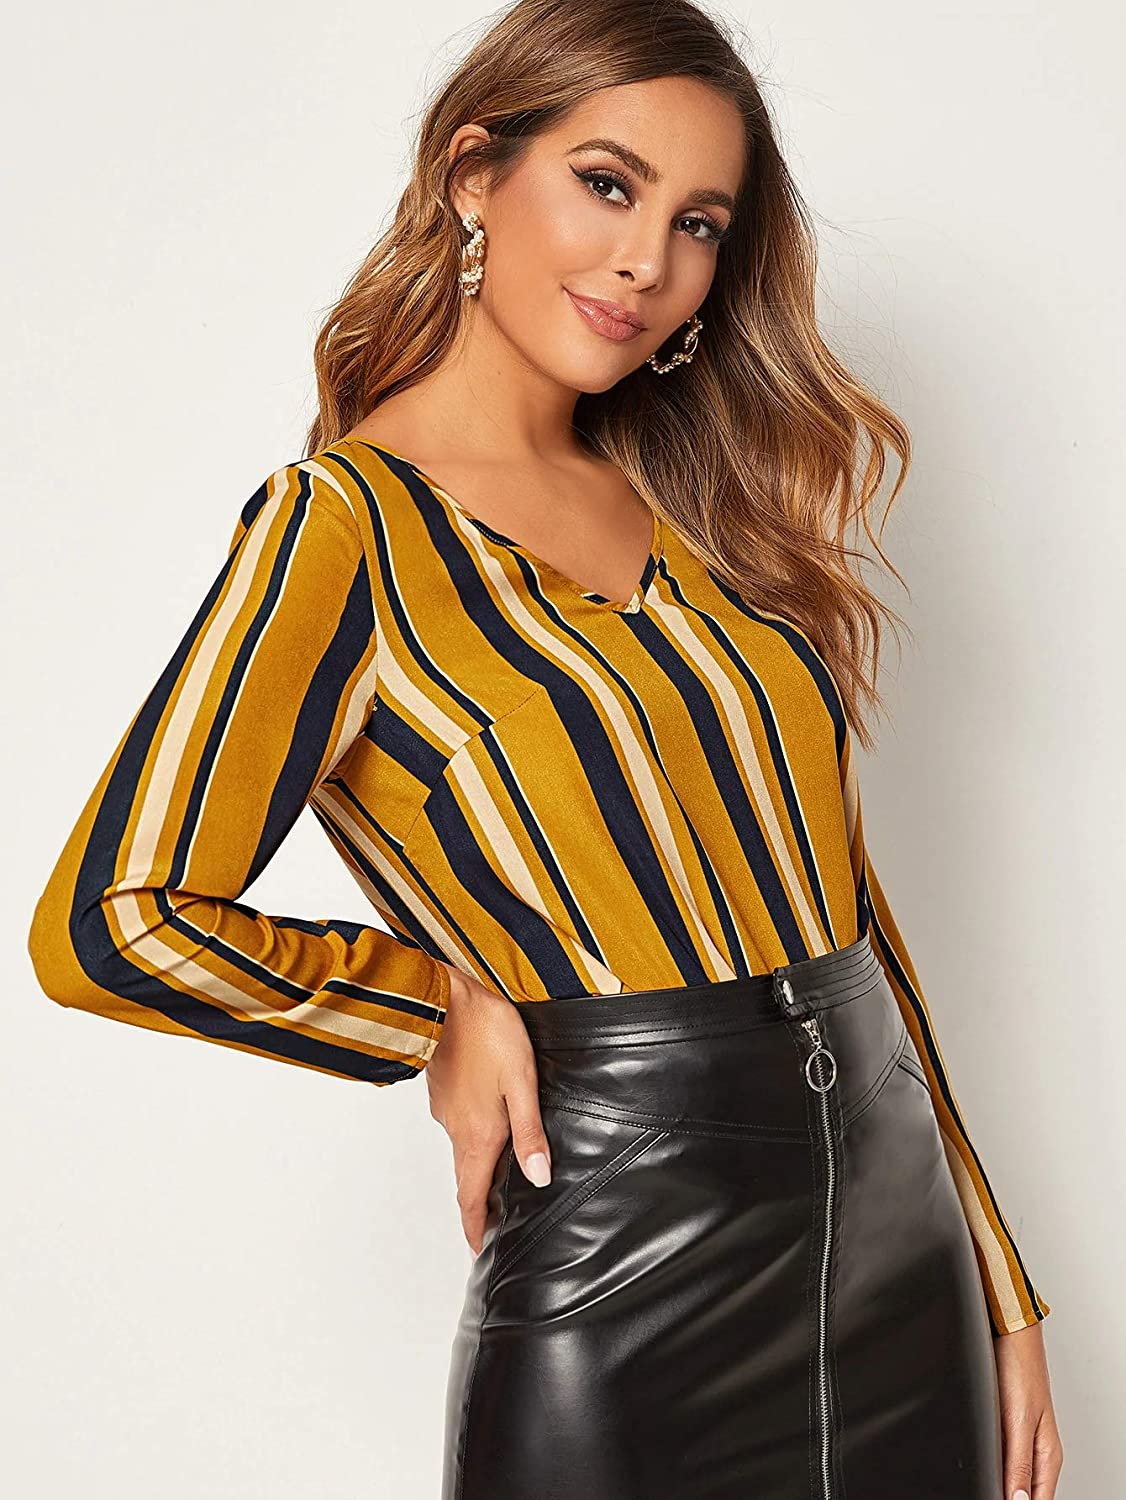 Milumia Womens Casual Striped V Neck Long Sleeve Basic Work Blouse Tops Yellow X-Large